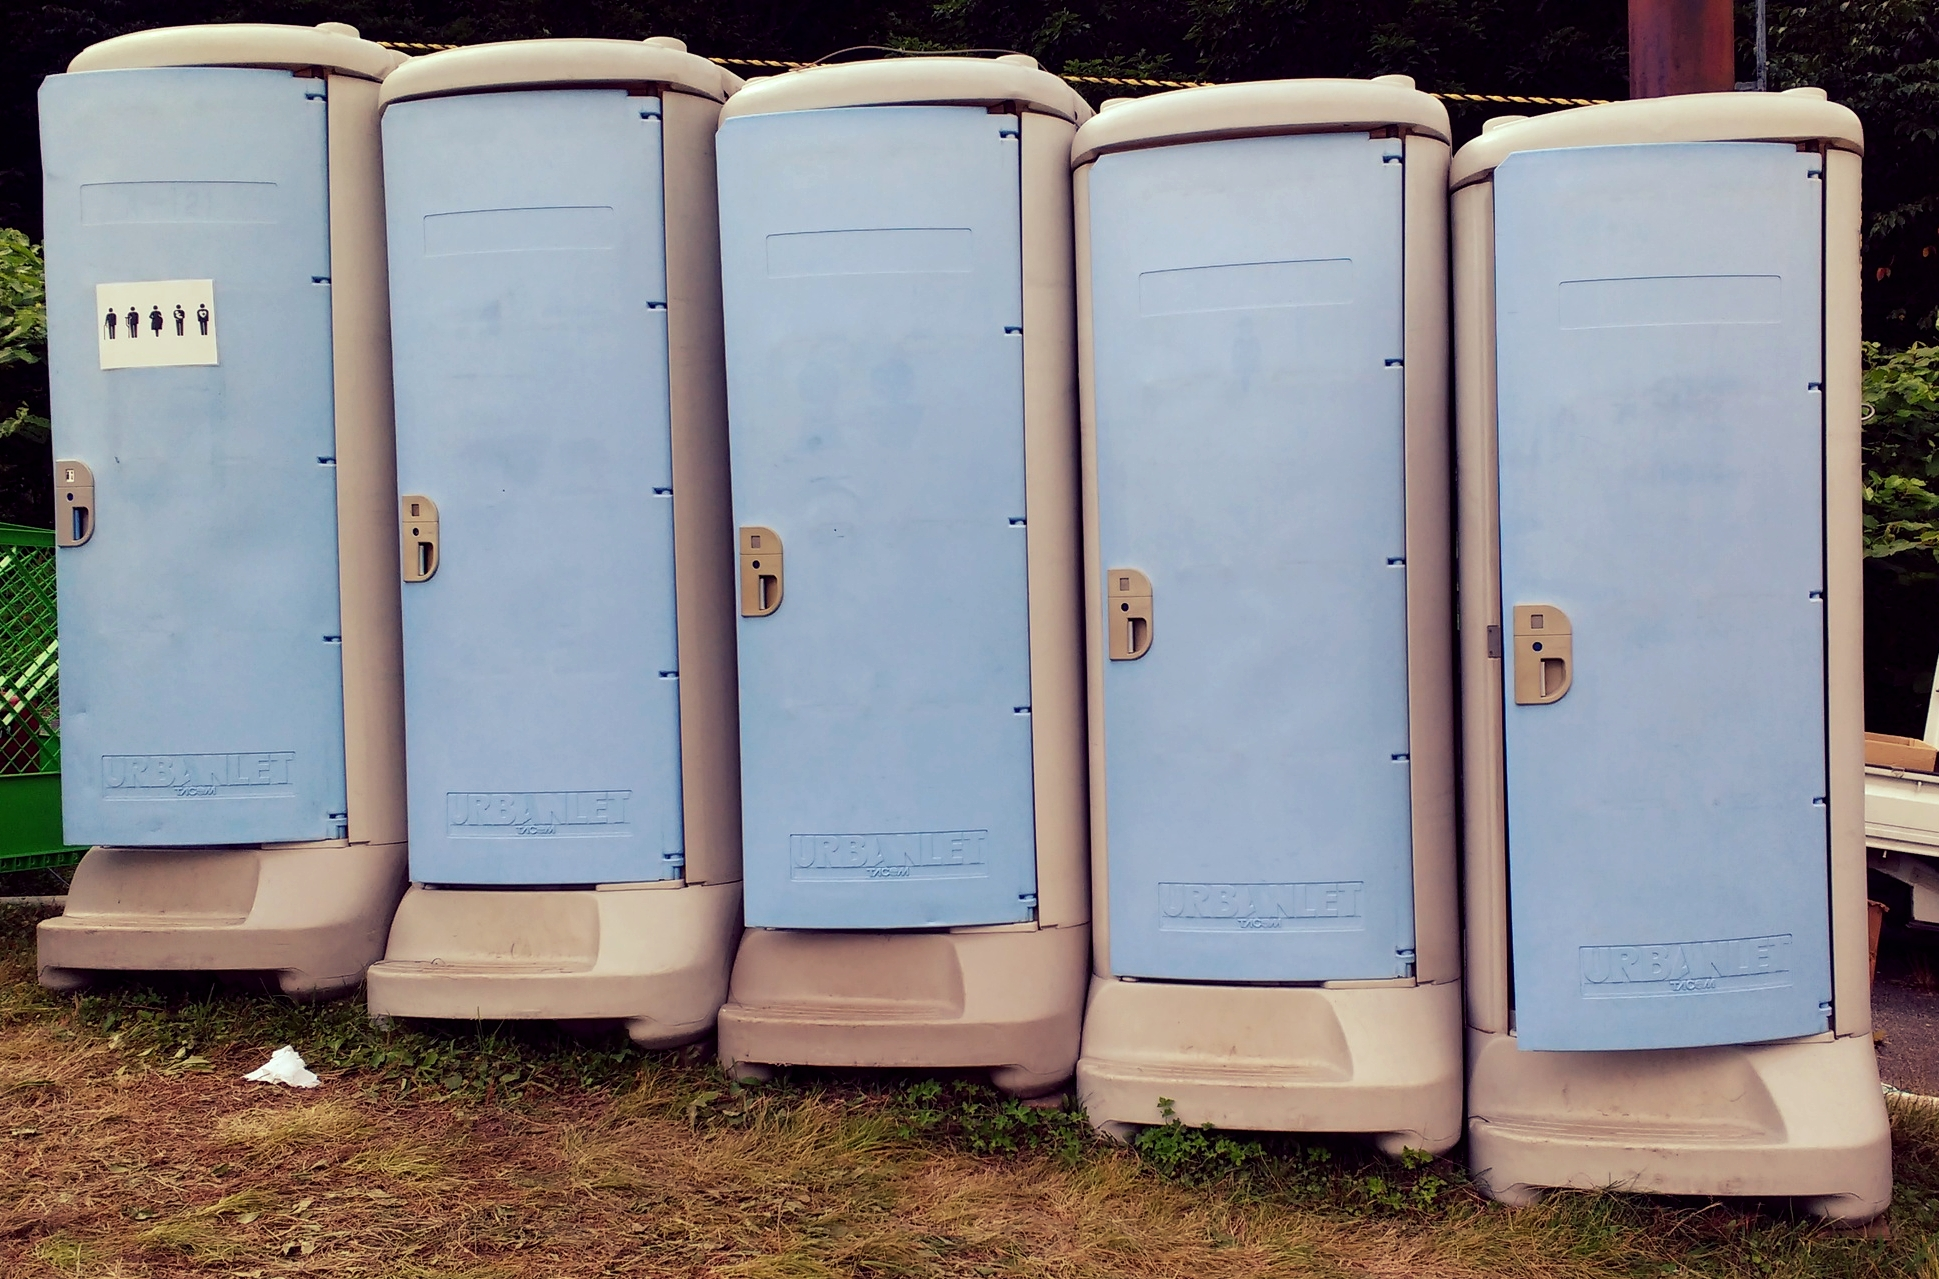 A few of the toilets I managed to find on the campsite